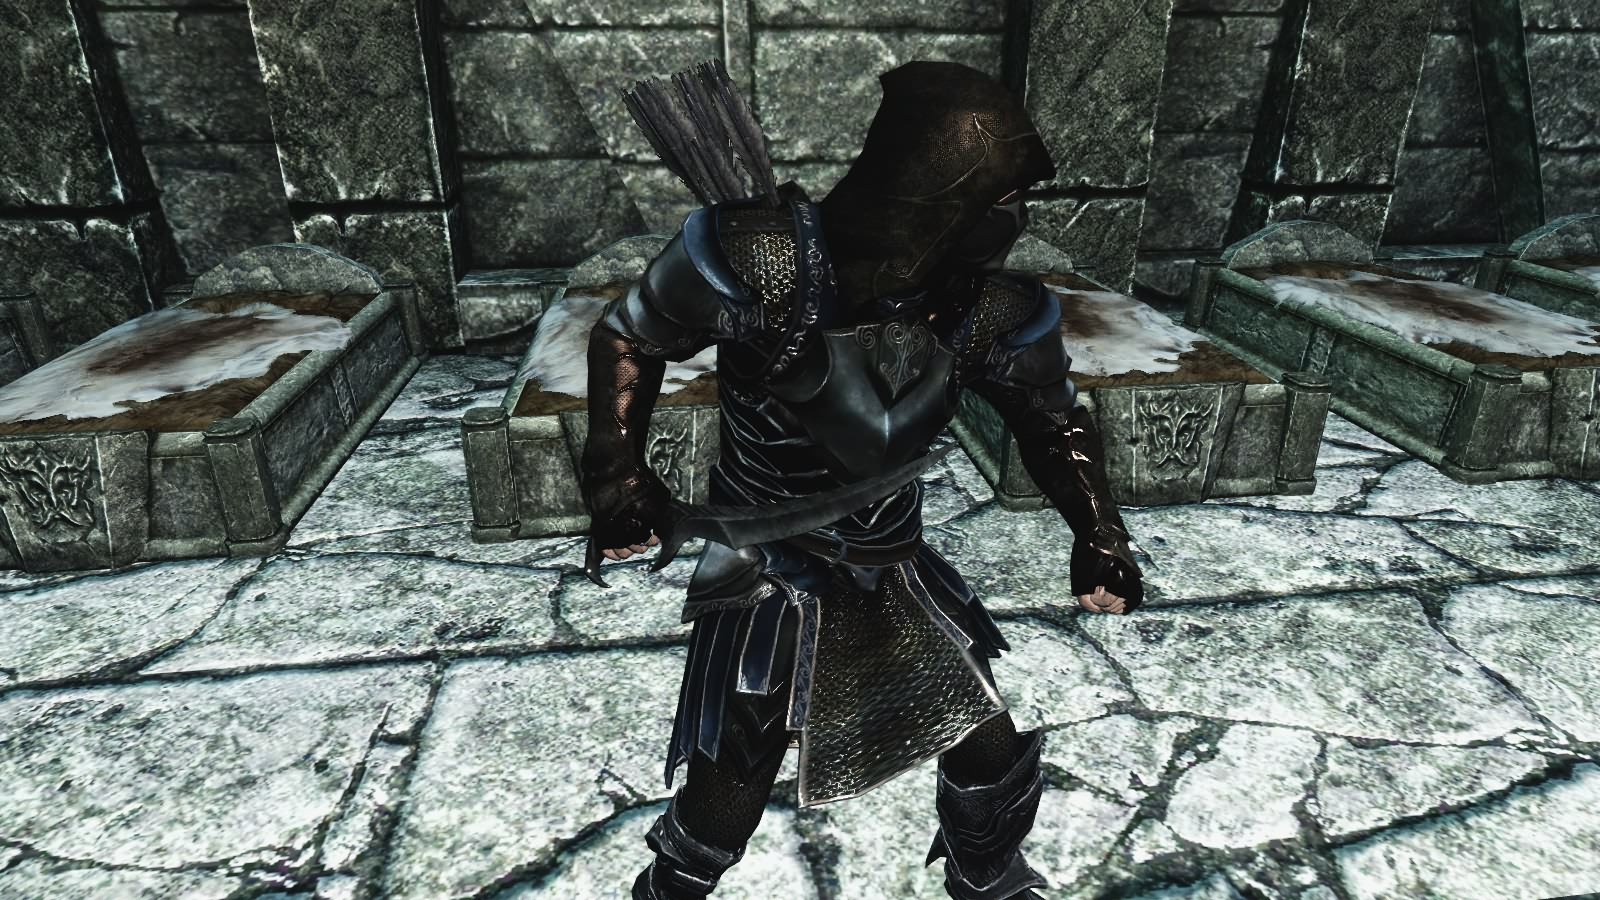 Skyrim Mod - Dark Blade of Woe screenshot 1